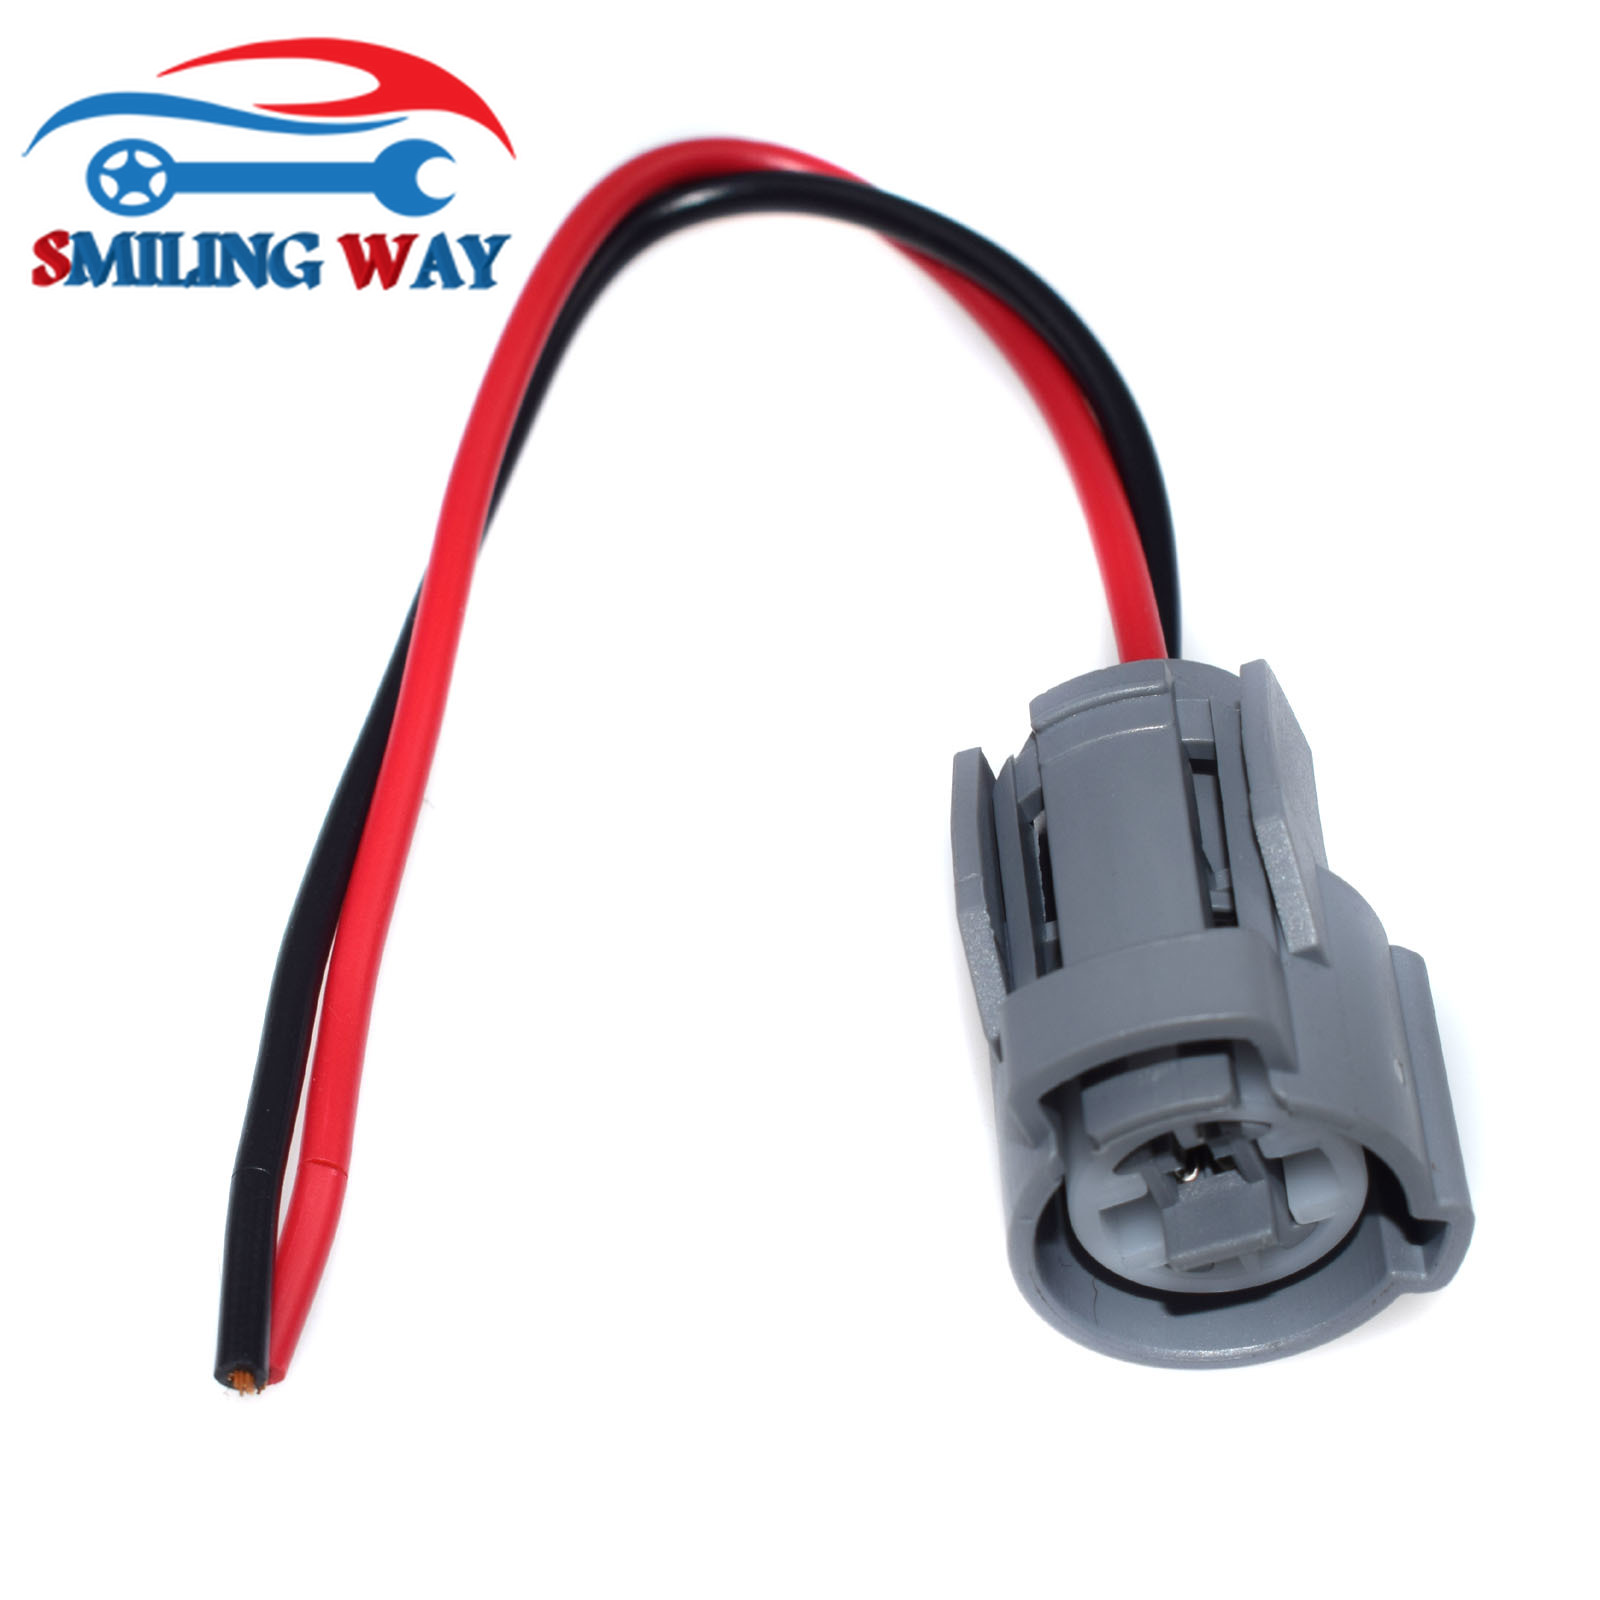 medium resolution of smiling way iat ect vtec sensor connector wire harness wiring pigtail plug for honda acura civic element pilot in fuel inject